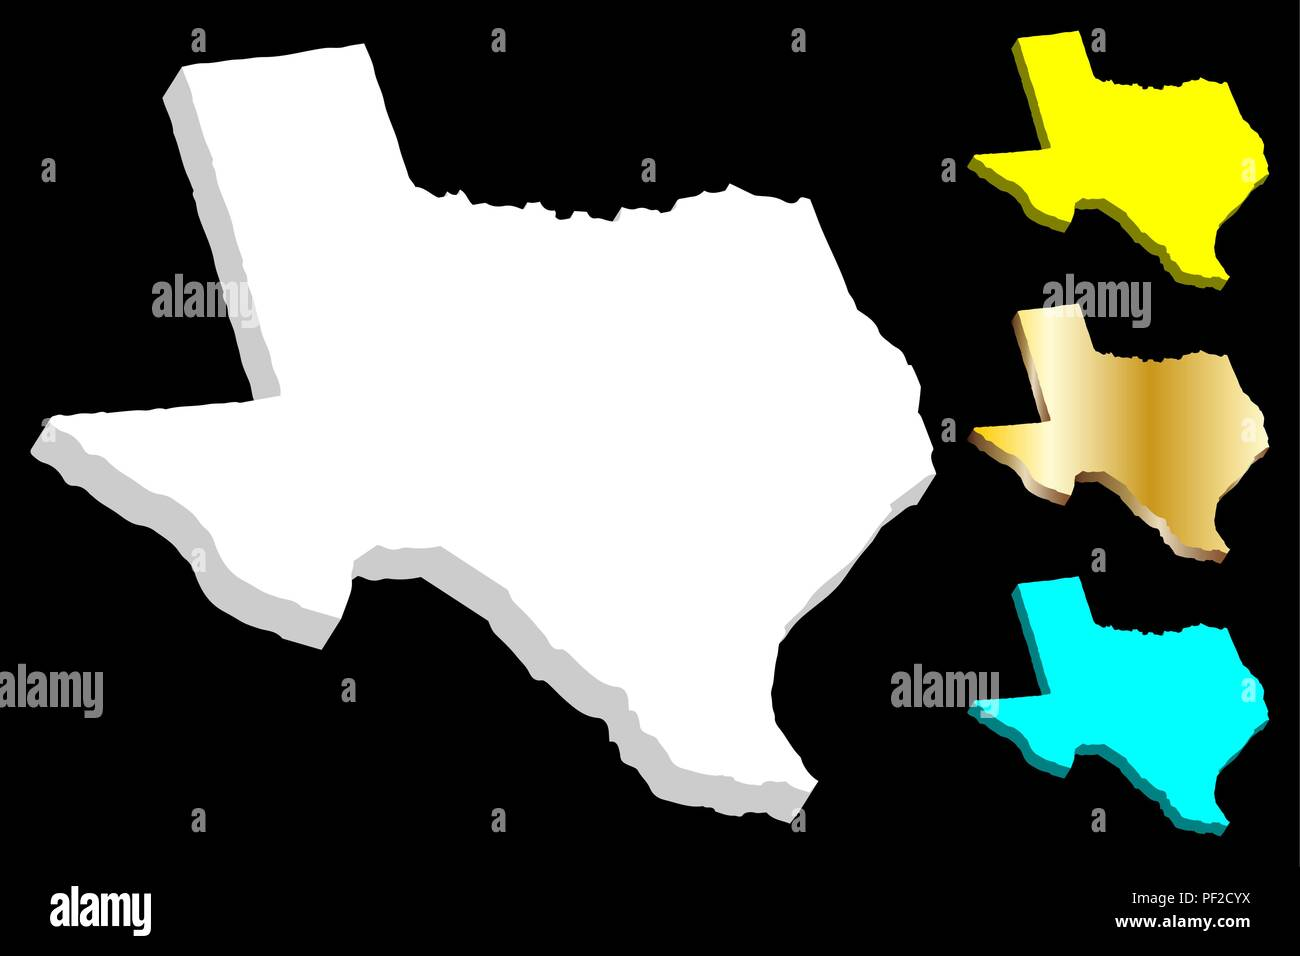 3d Map Of Texas United States Of America The Lone Star State